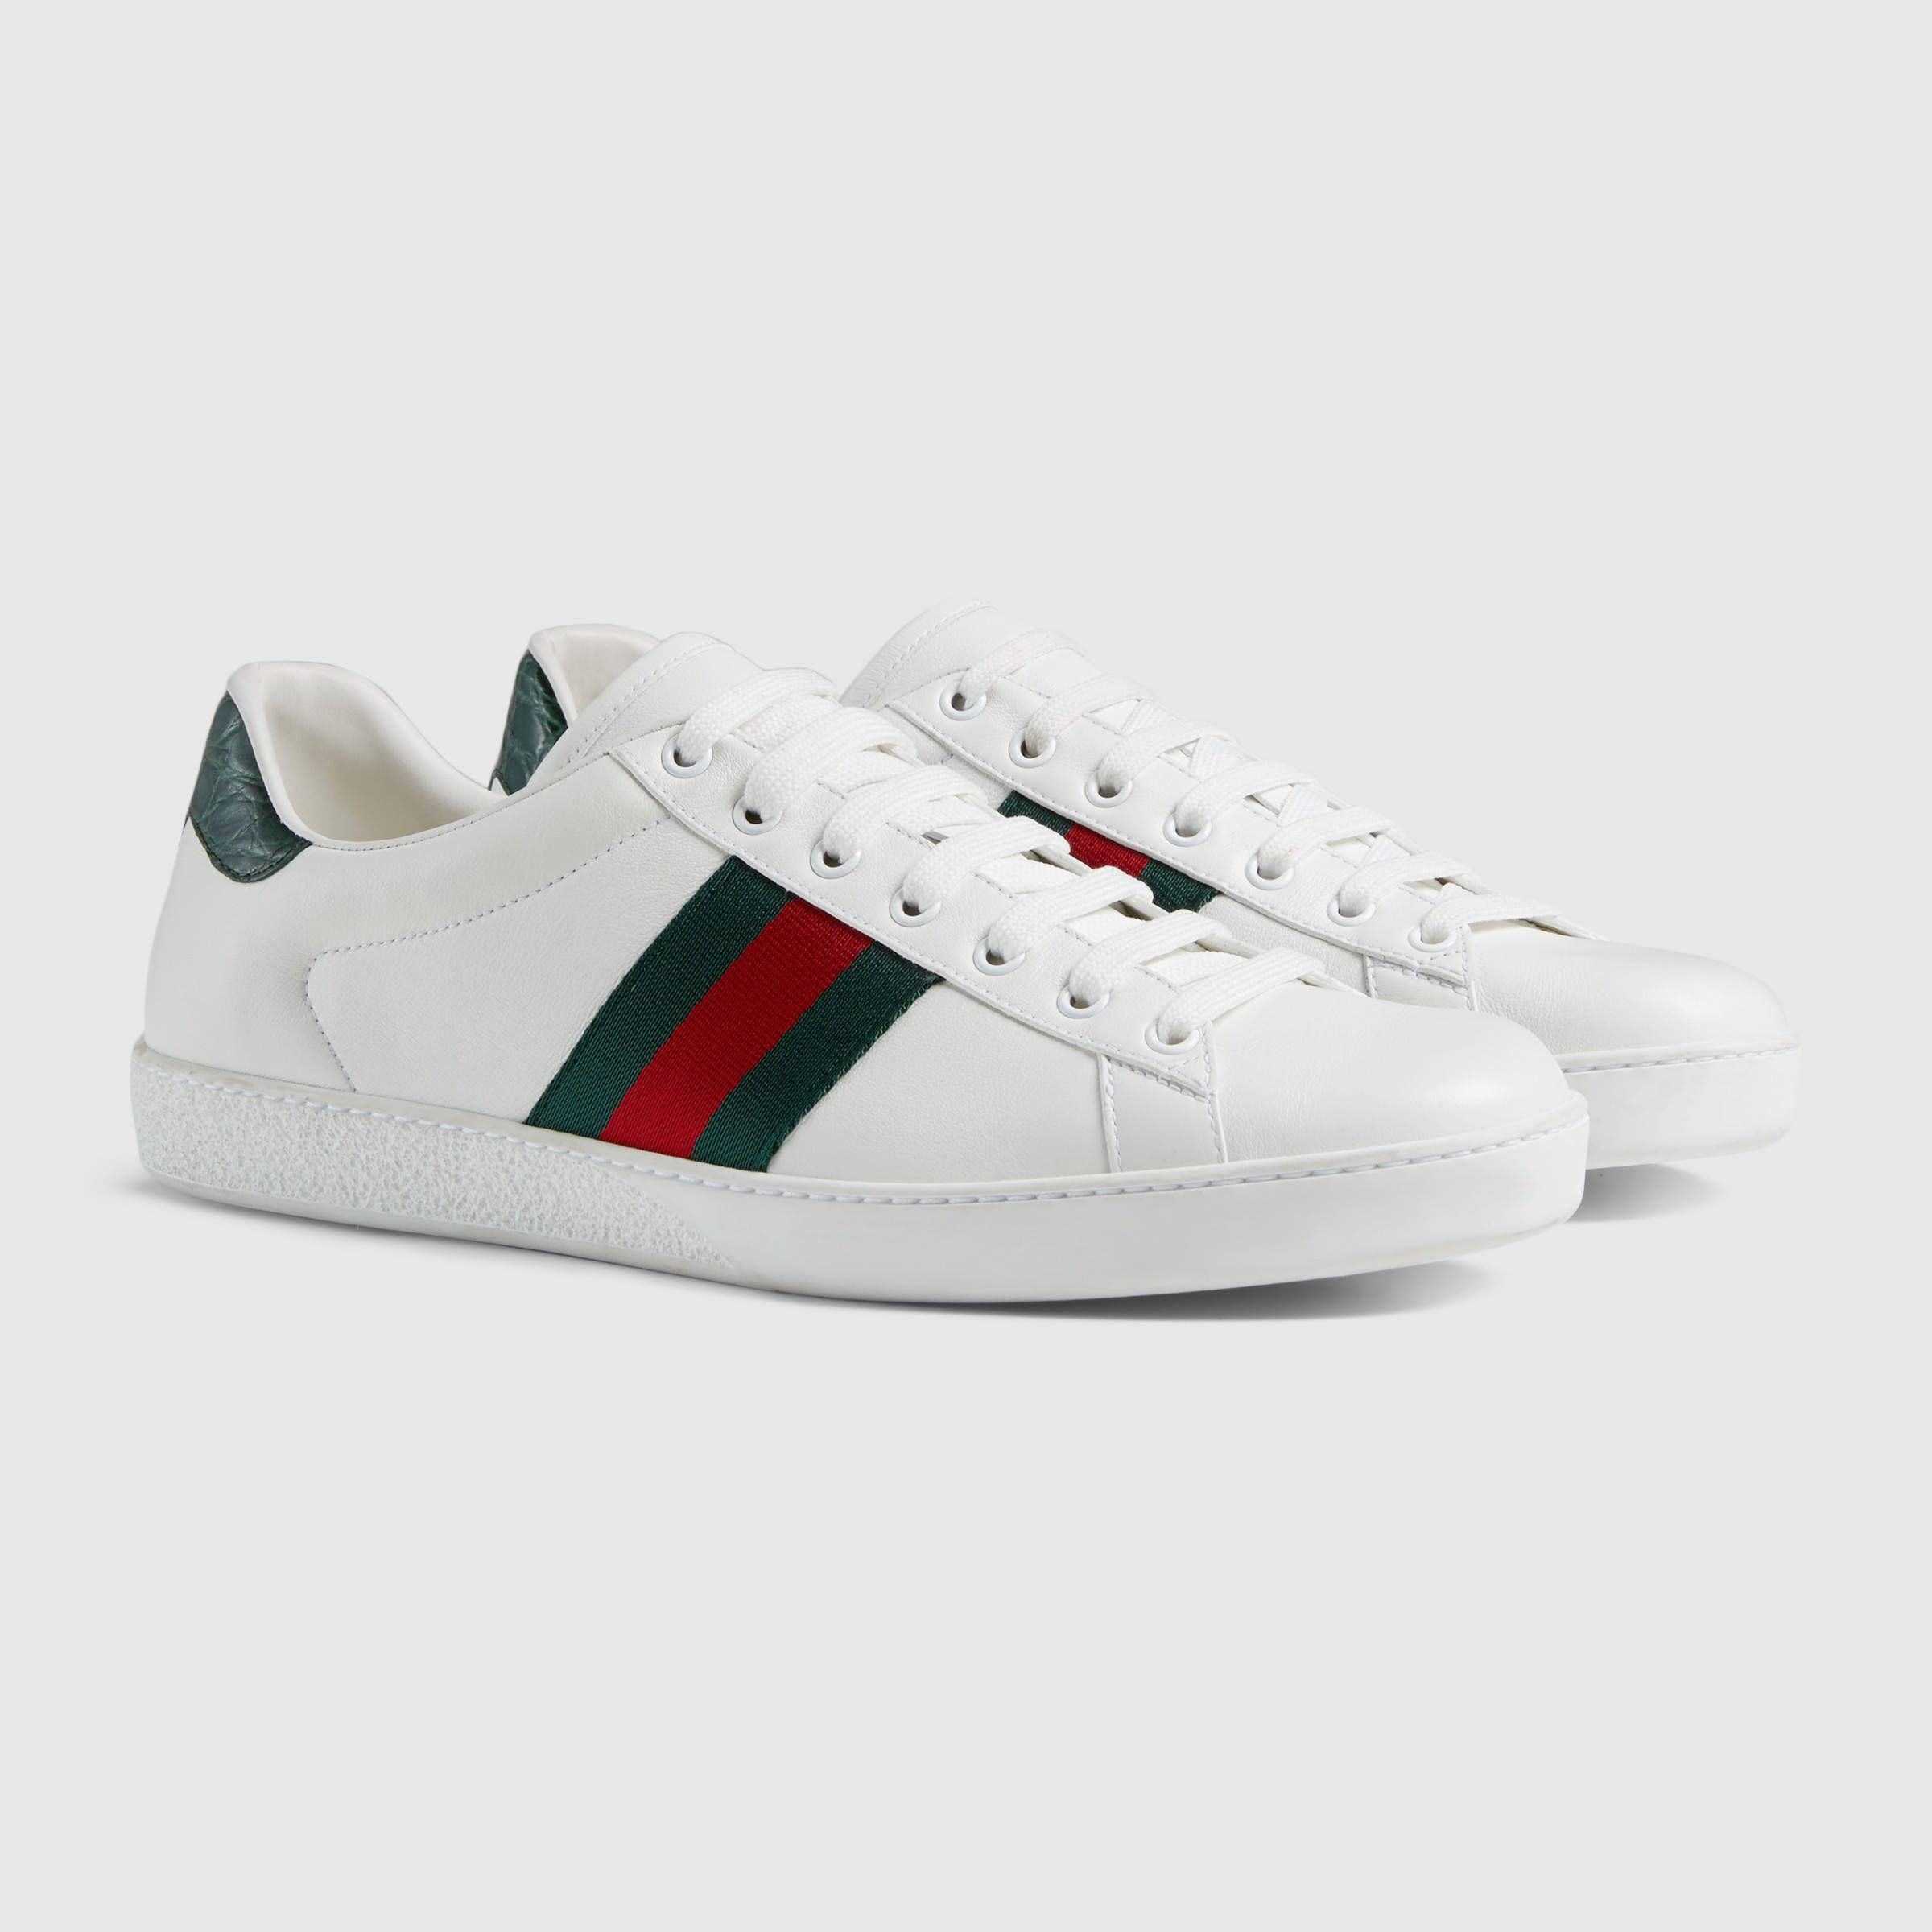 994f62f6e44 Gucci Ace leather sneaker | moods | Gucci shoes sneakers, Gucci mens ...